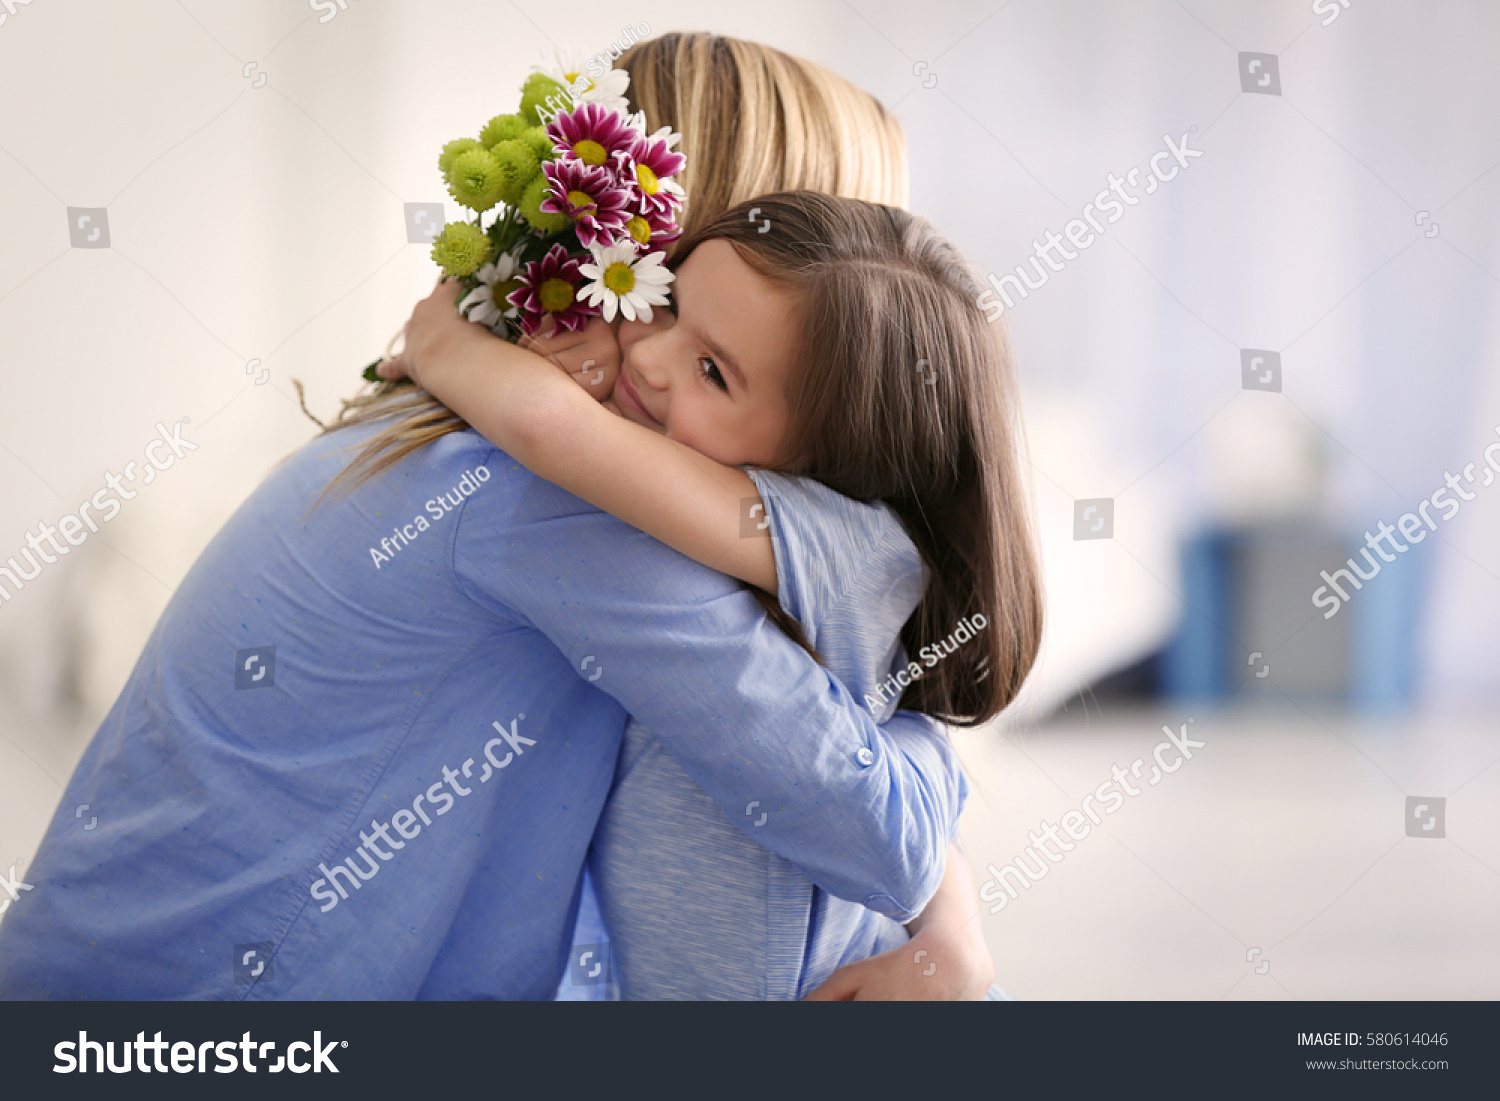 Cute little girl greeting her mother at home. Mother's day concept #580614046